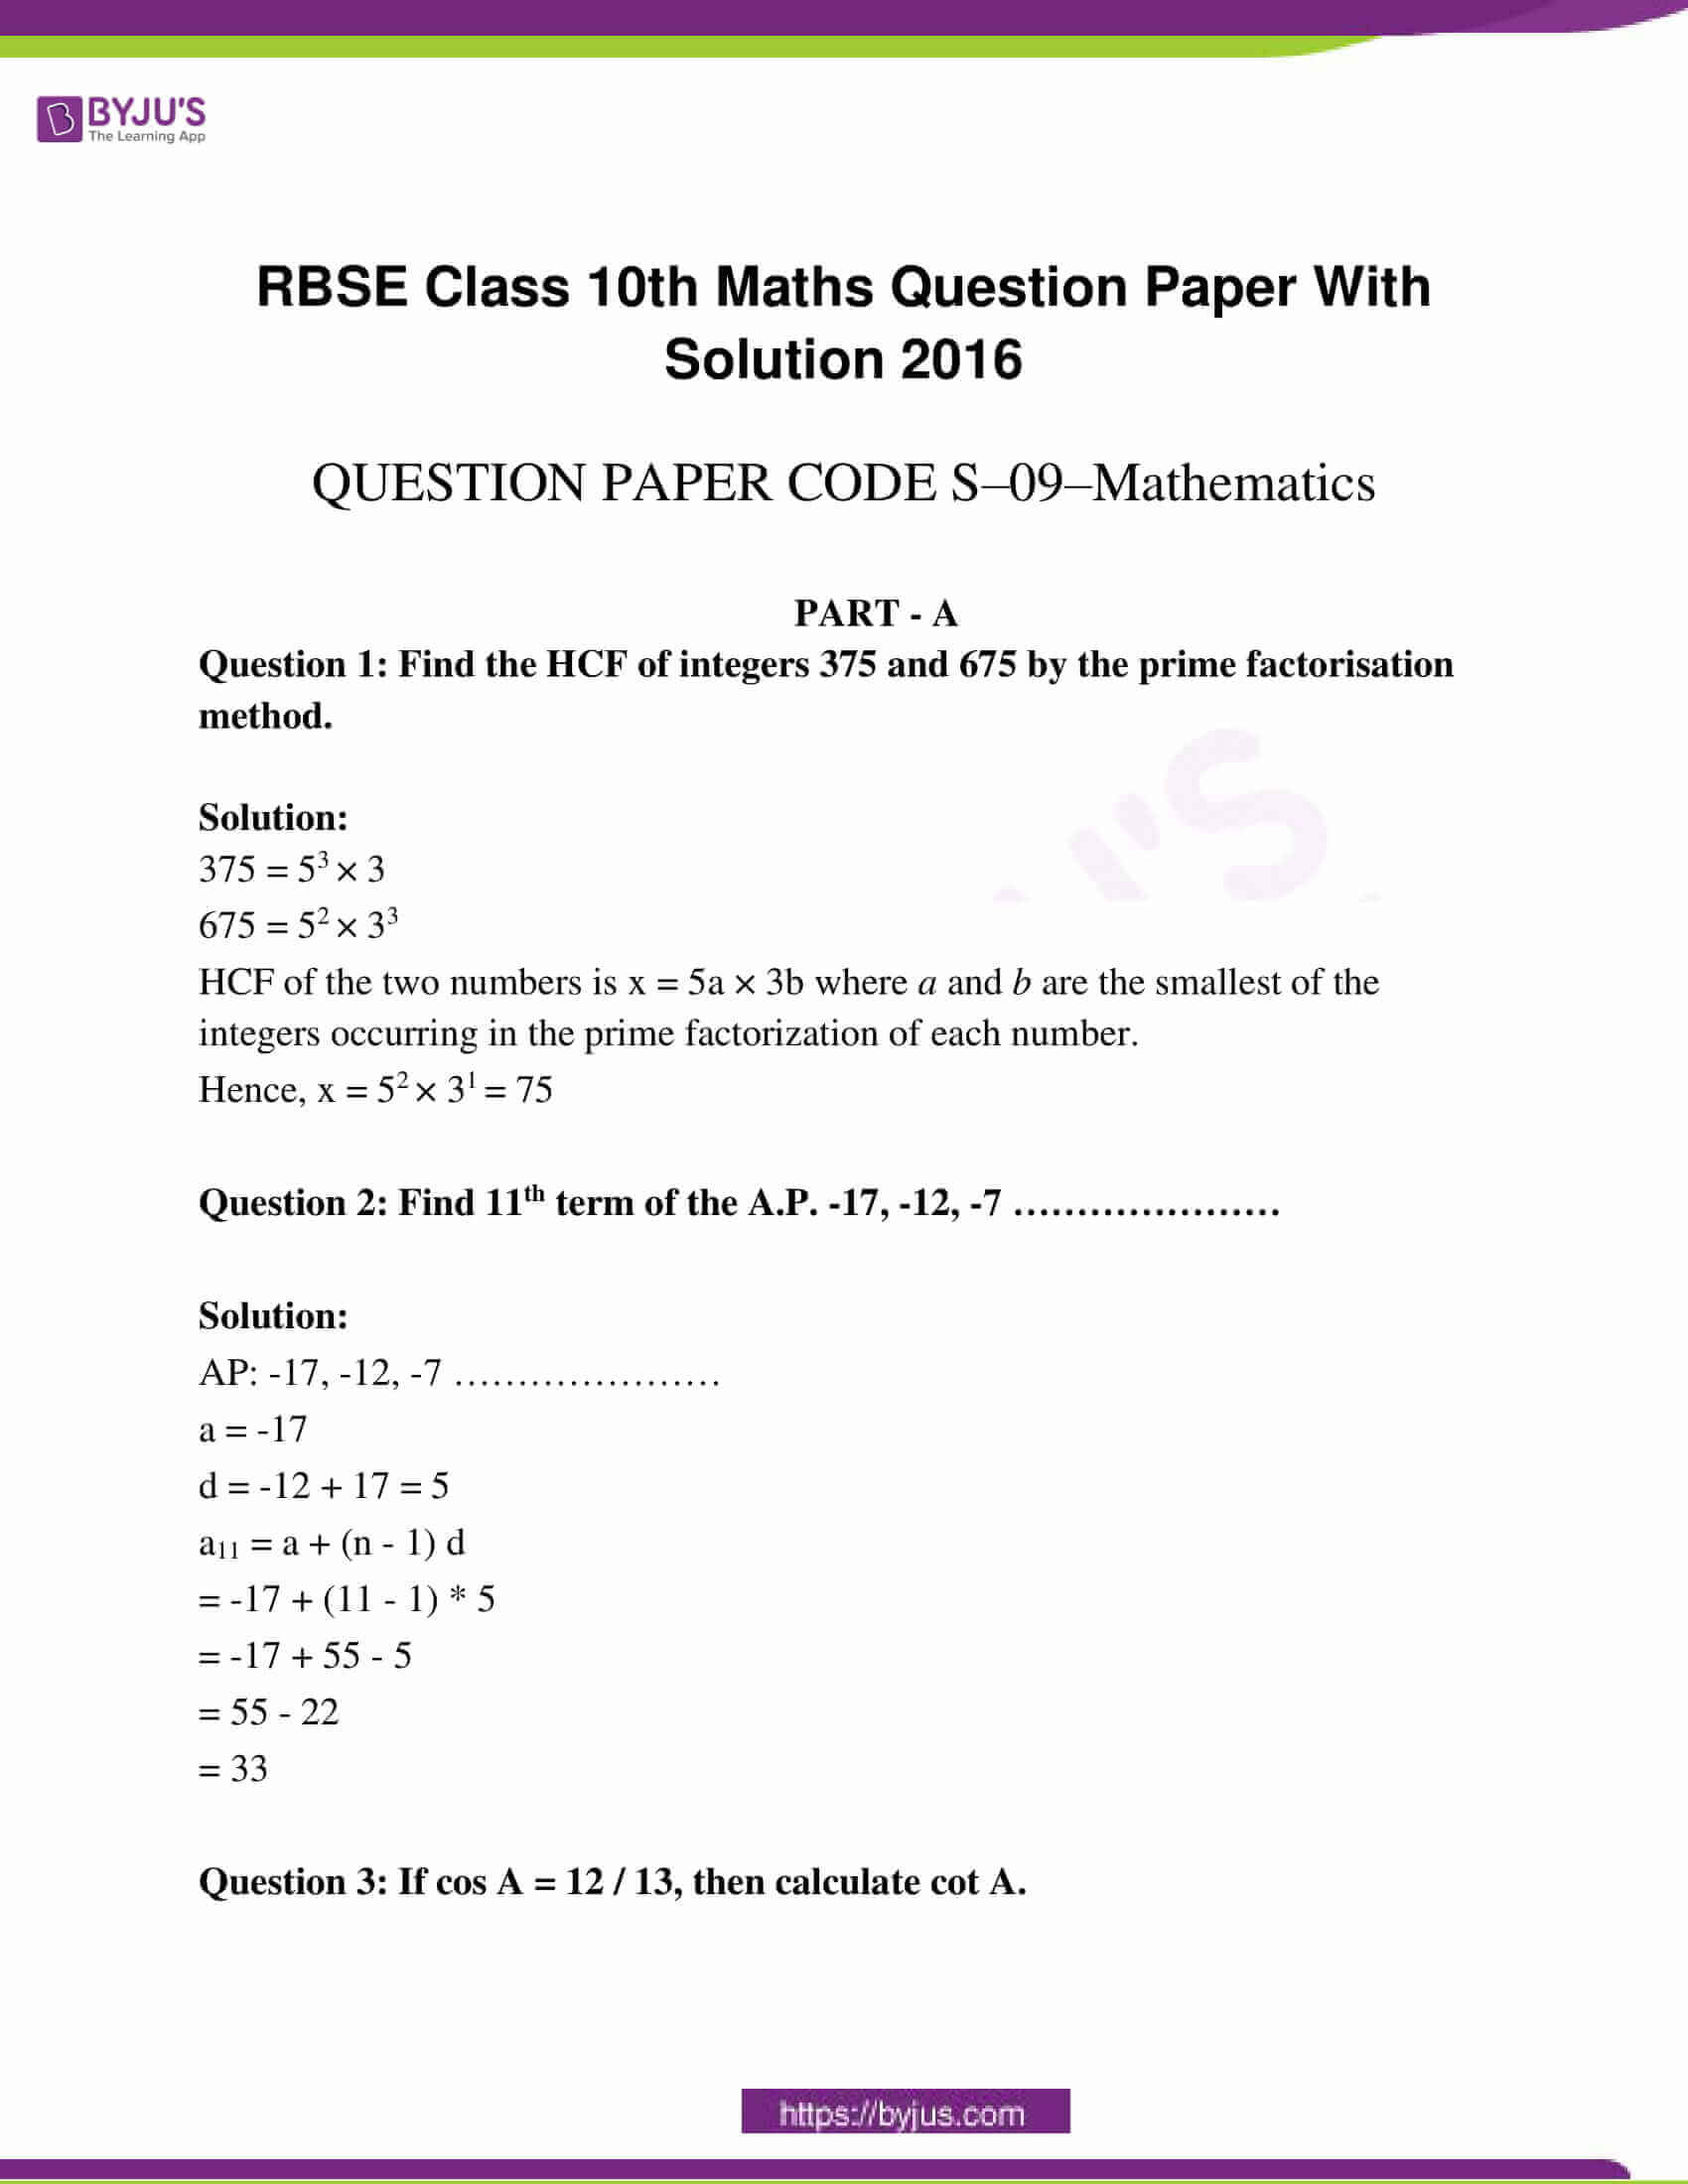 rajasthan board class 10 examination question paper sol march 2016 01